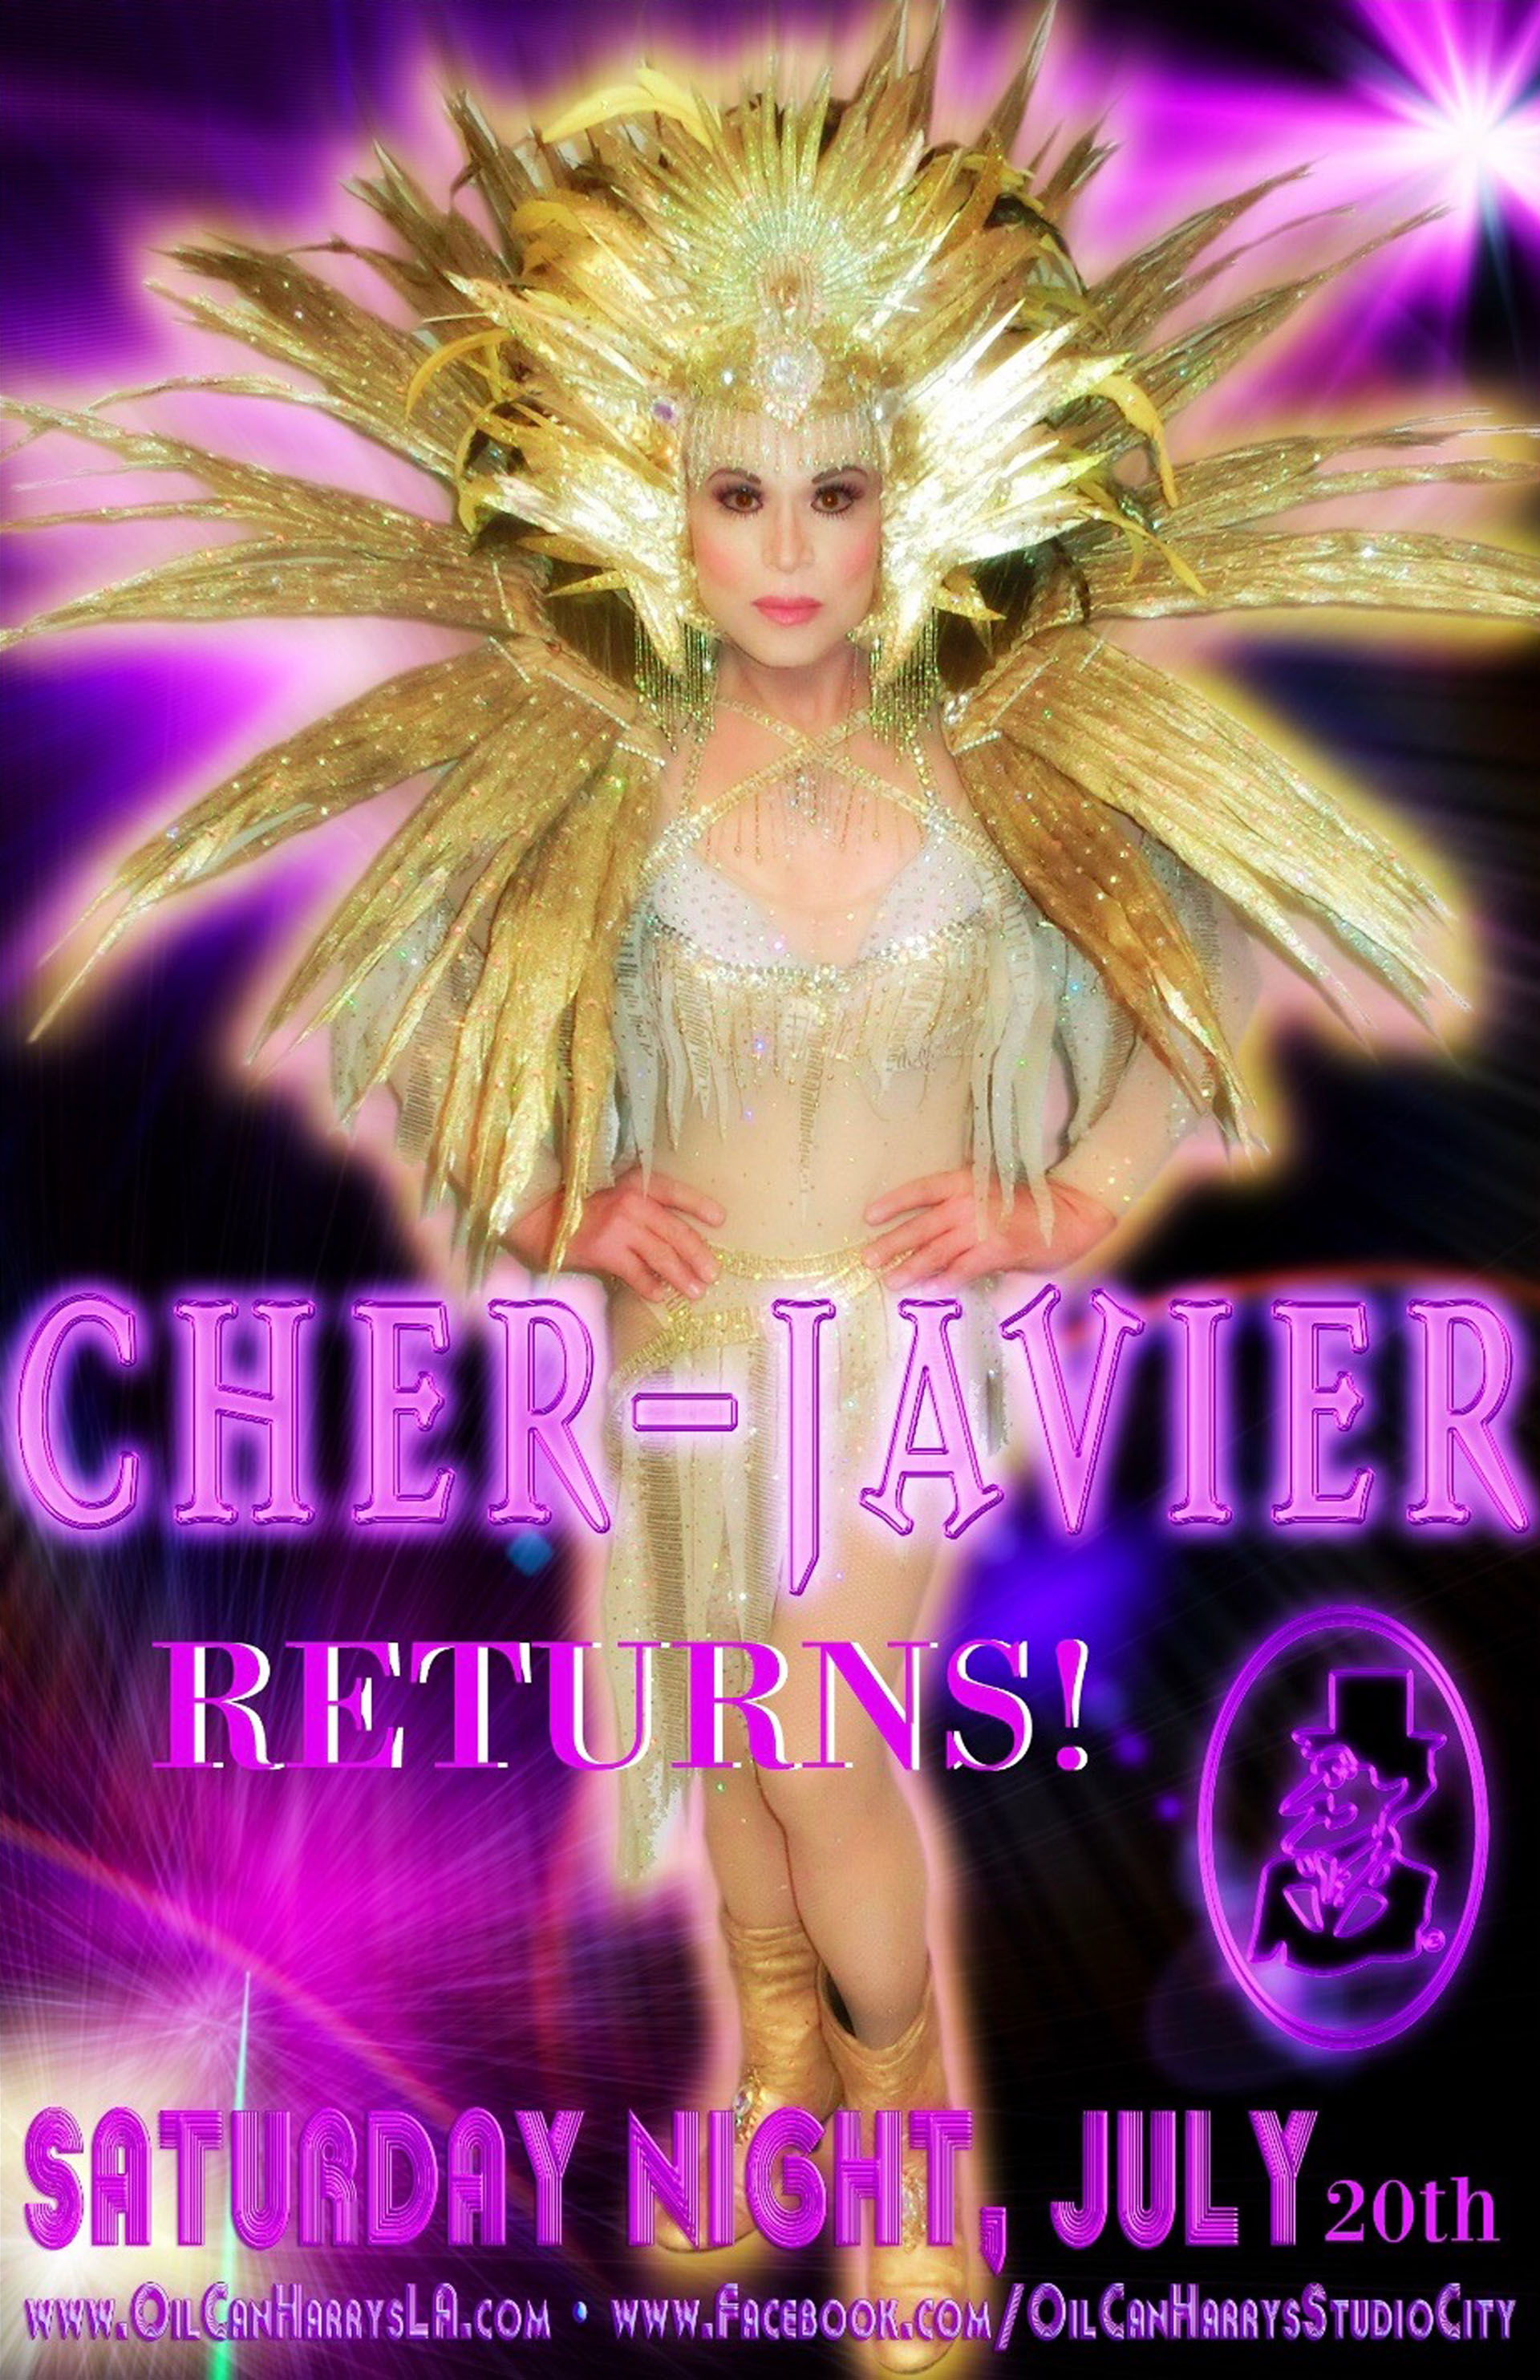 CHER-JAVIER Returns to OIL CAN HARRY'S: Saturday Night, July 20, 2019!